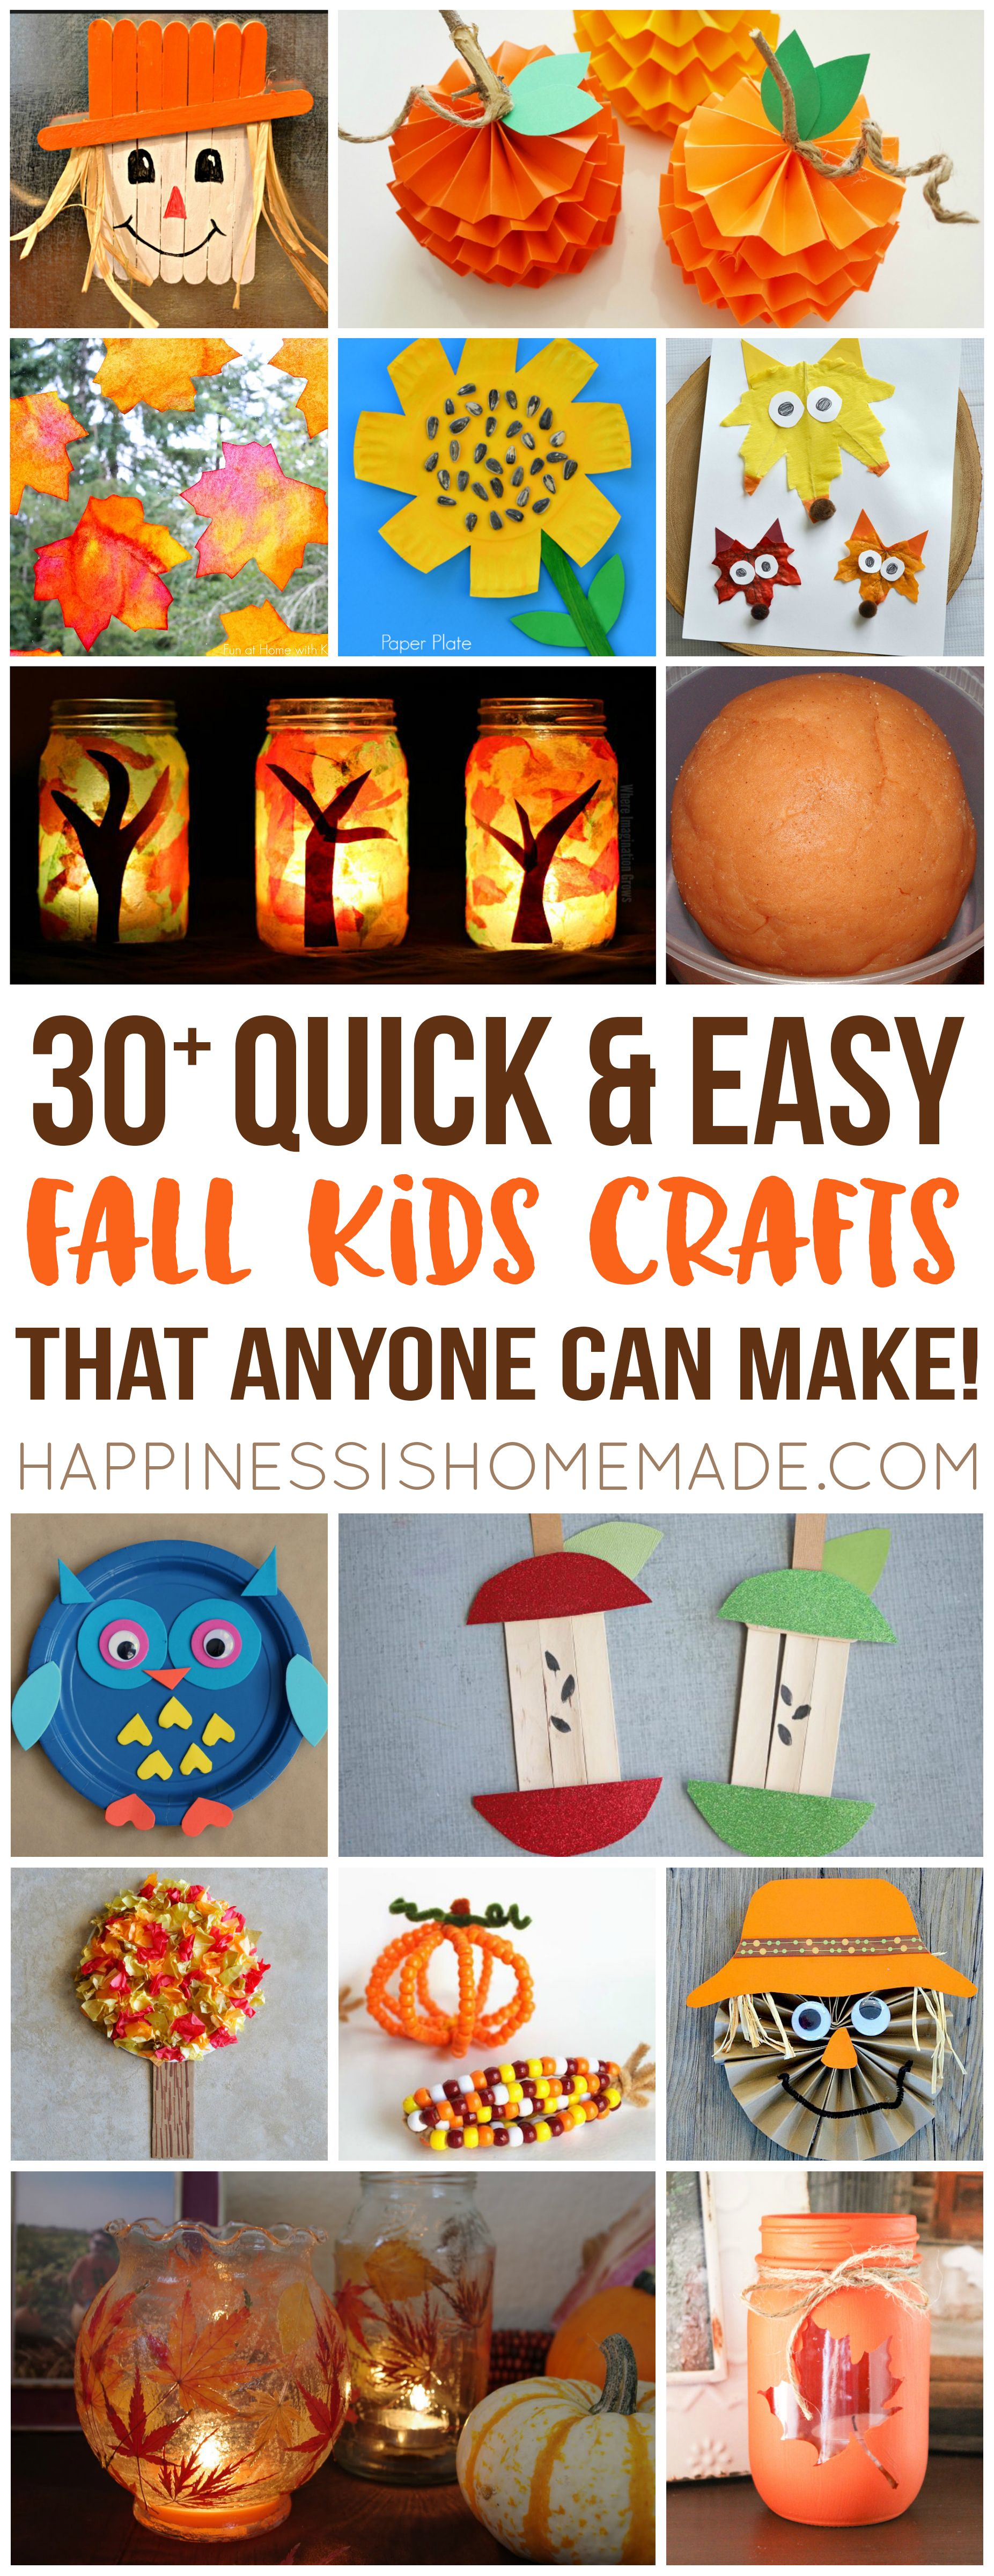 Make These Quick Easy Autumn Fall Kids Crafts In Under